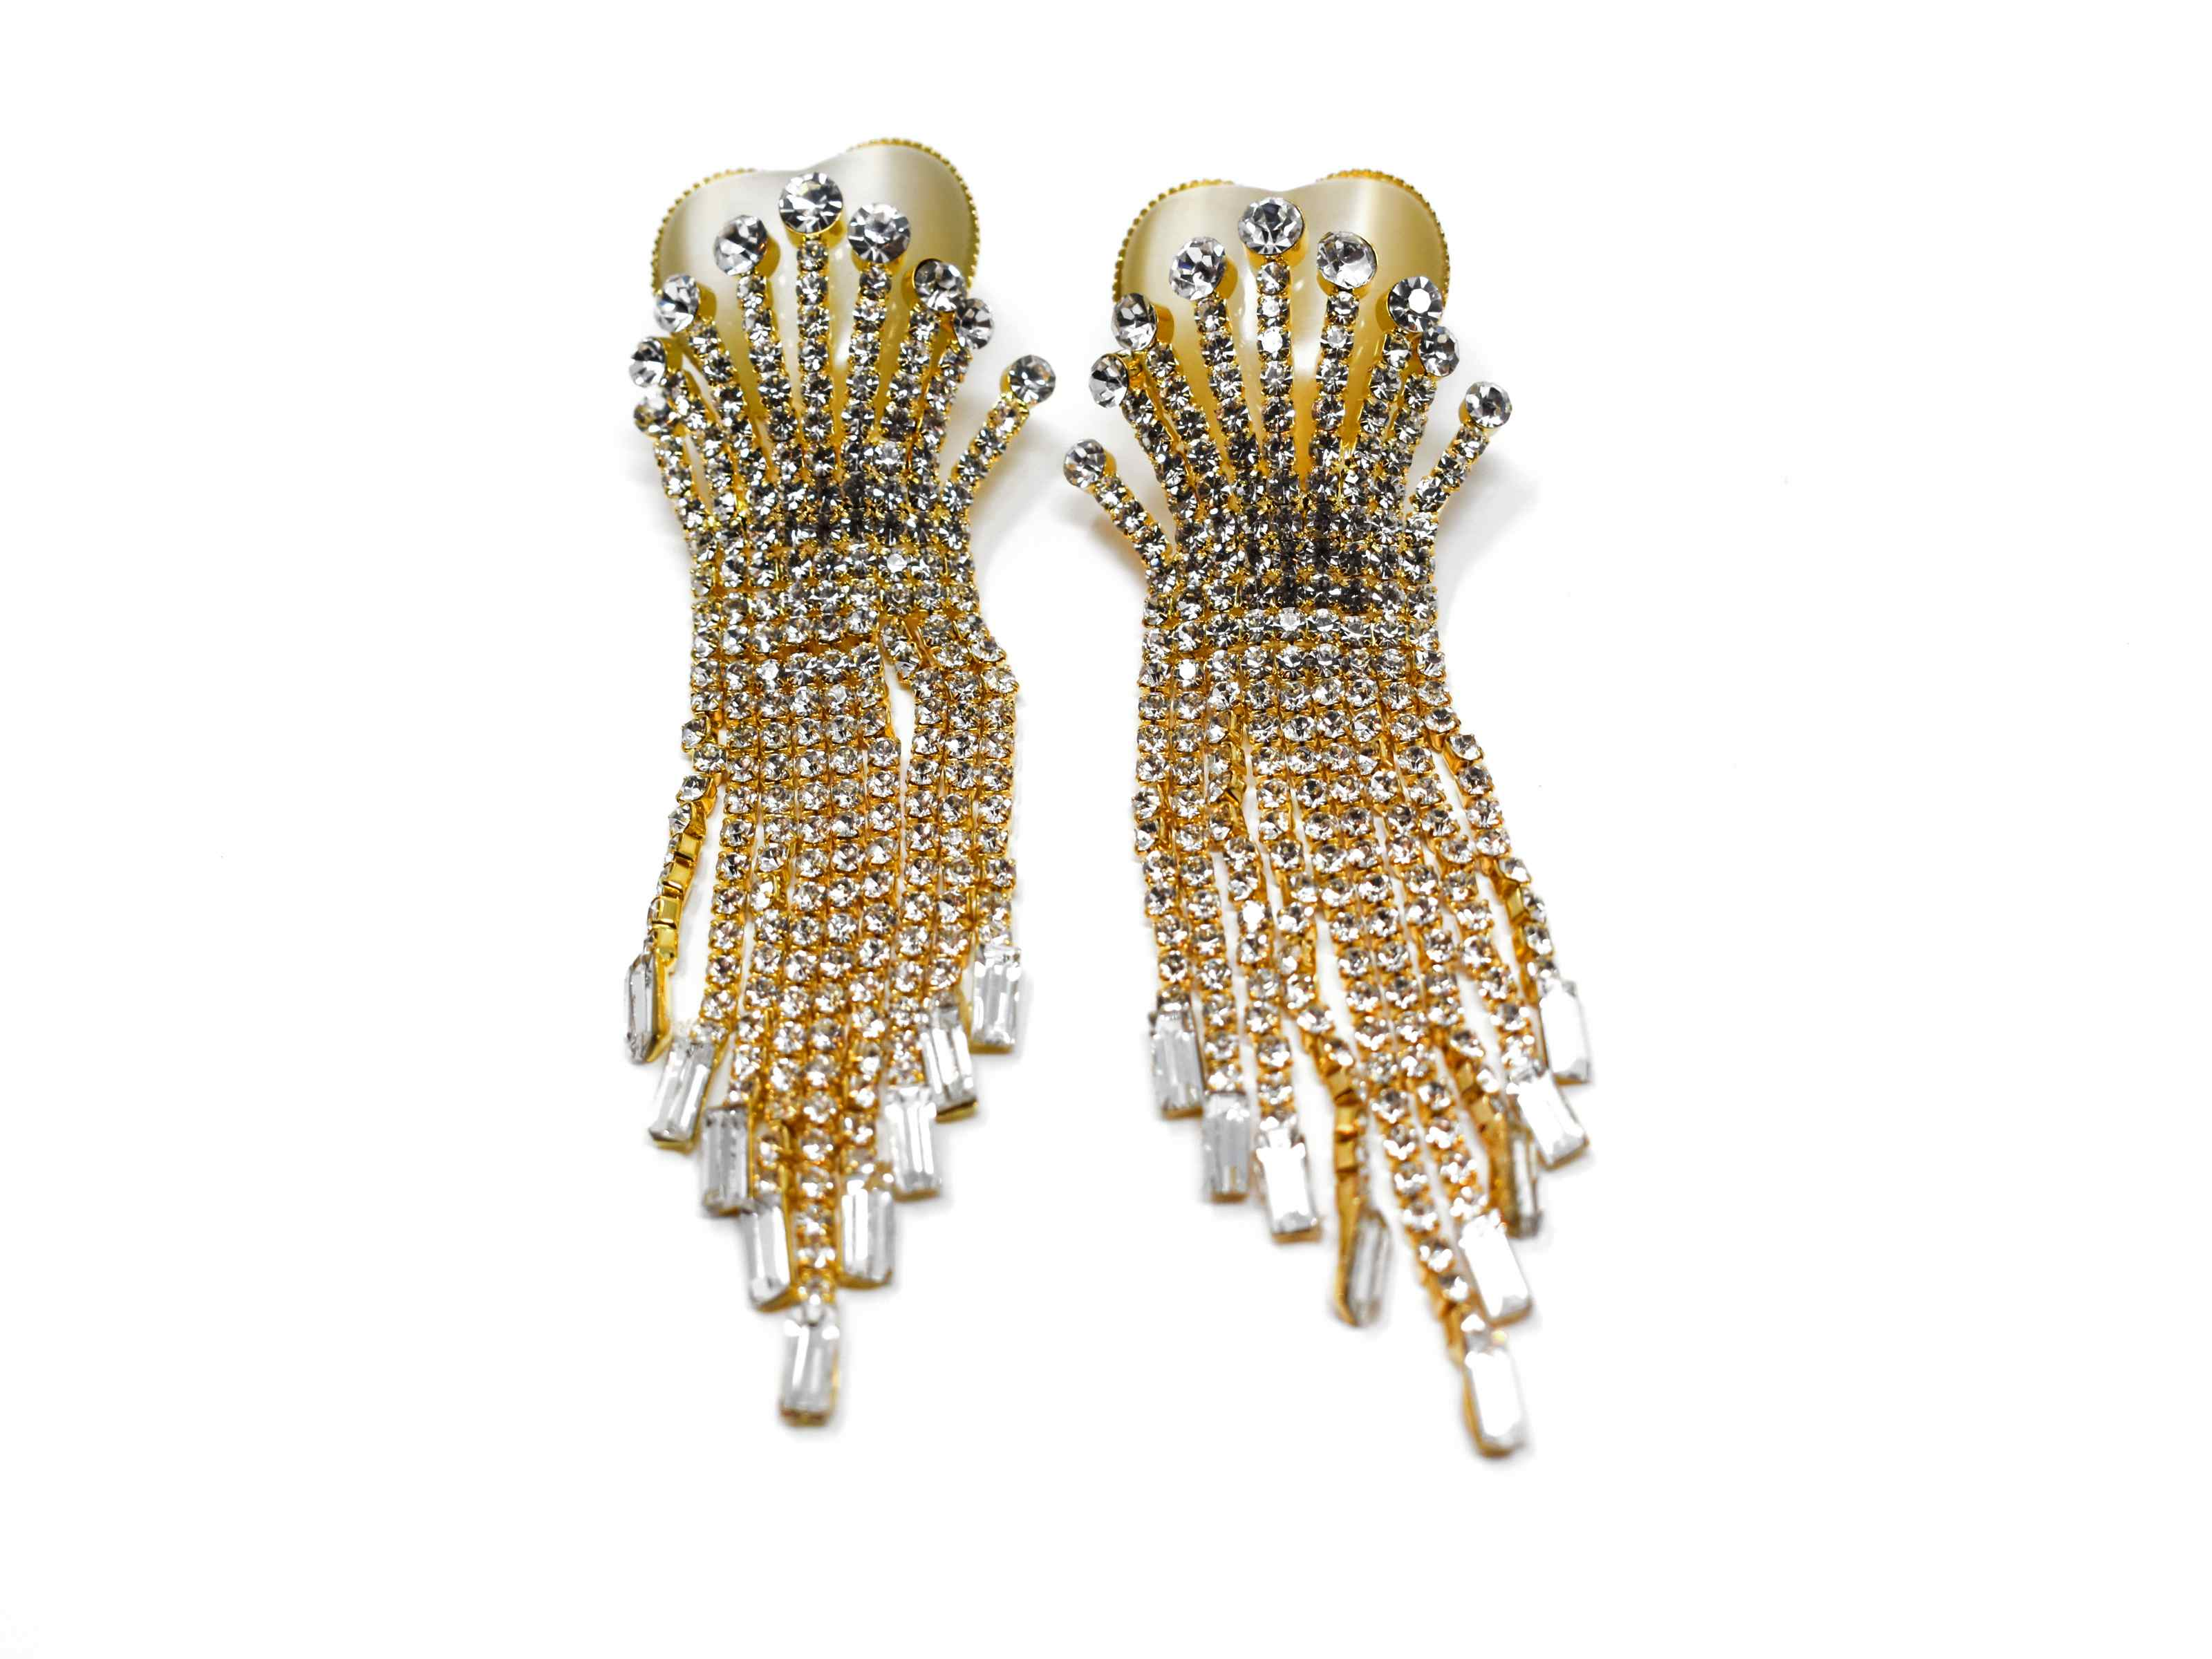 Gaillardia Brilliantly stoned Gold with clear stone detail over its heart shaped base is a wonderful addition your wardrobe. It is 3 1/2 inches in length with a push back clasp.